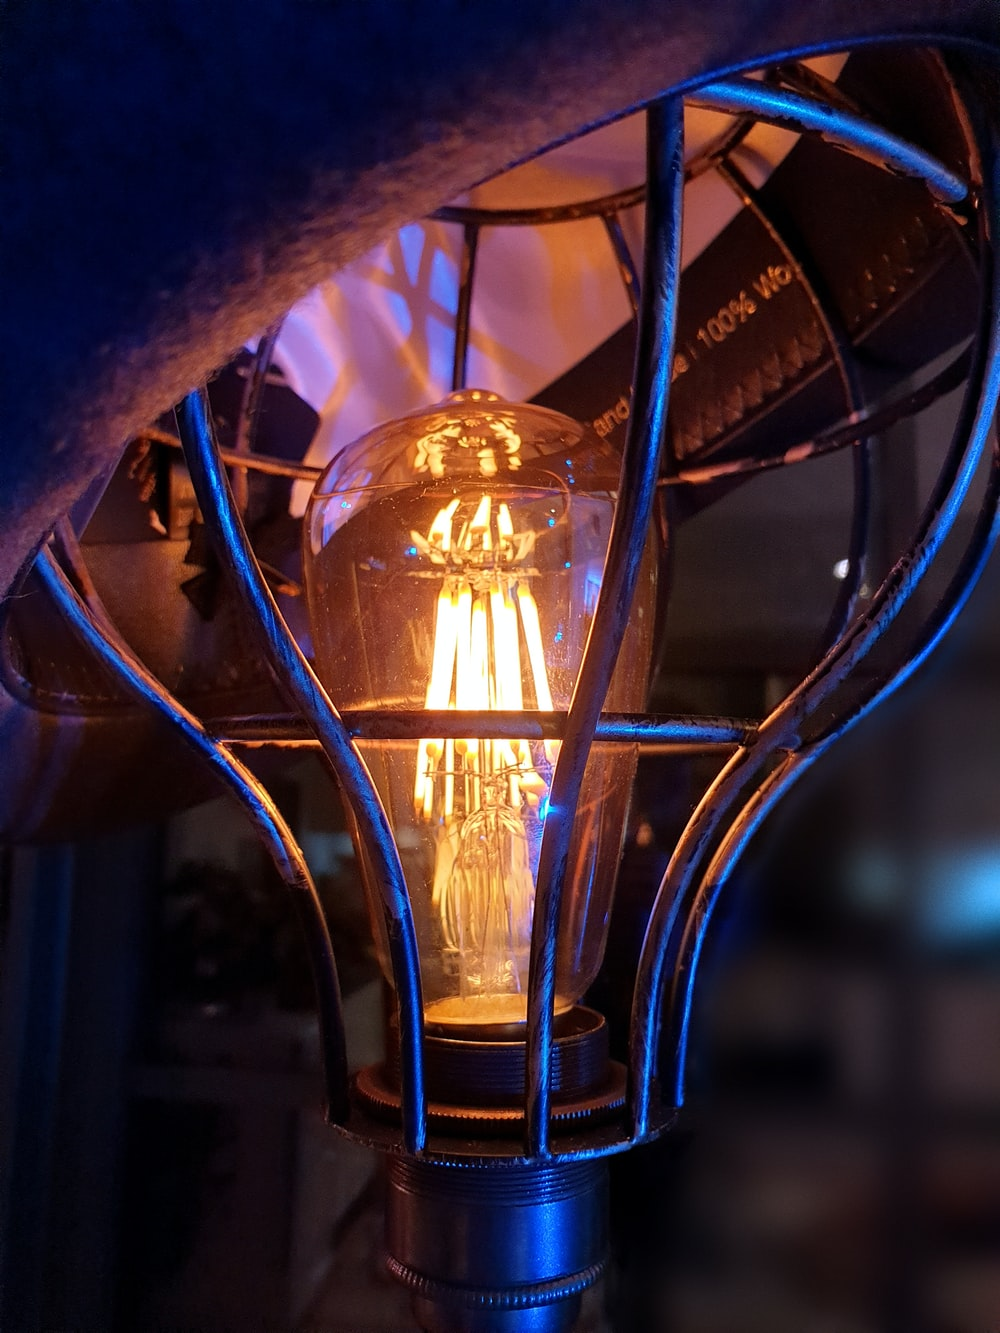 yellow light bulb turned on in close up photography